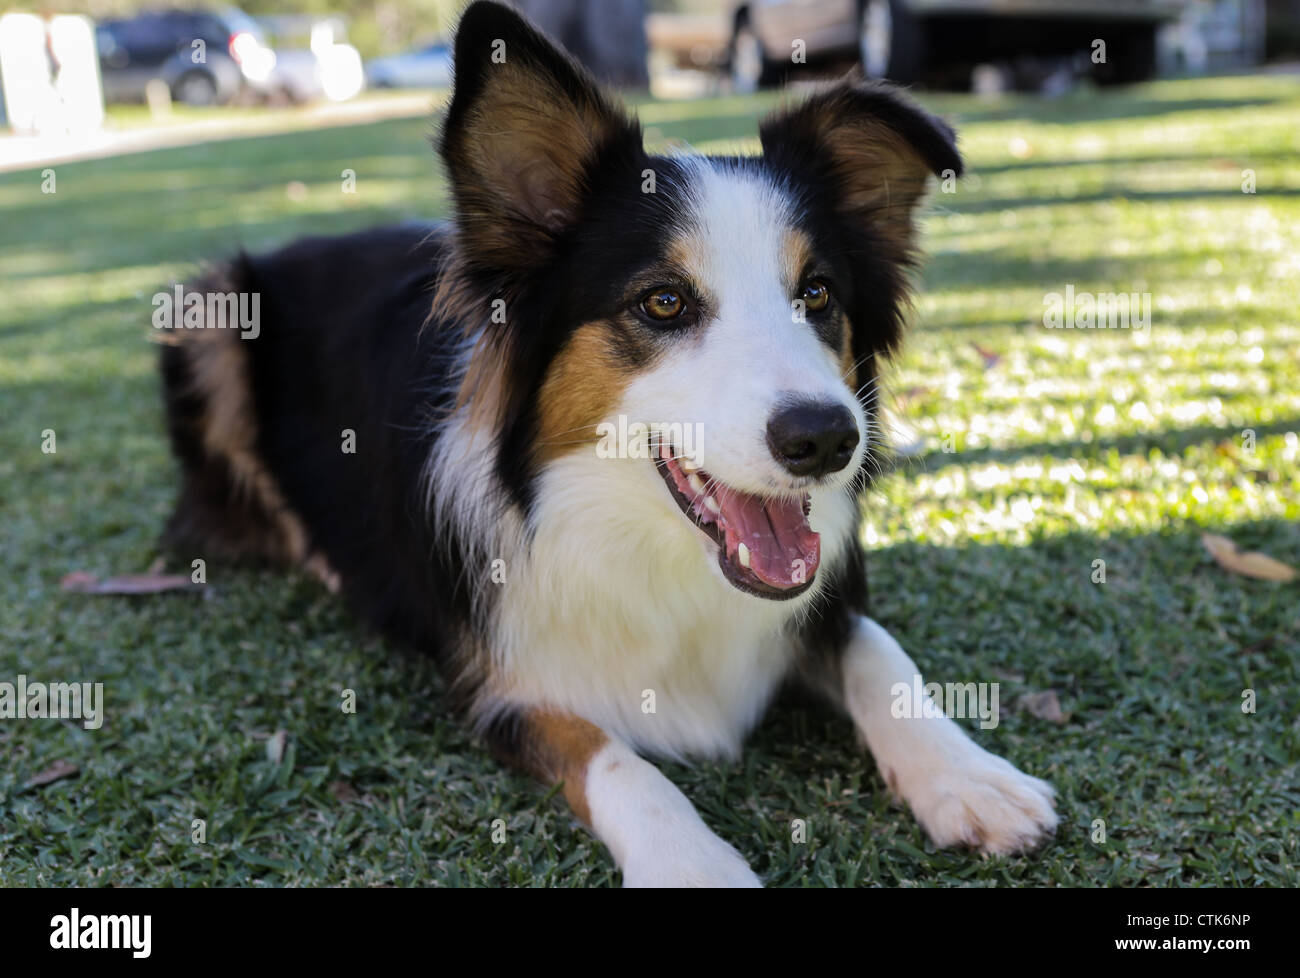 boarder collie dog lies on the grass - Stock Image